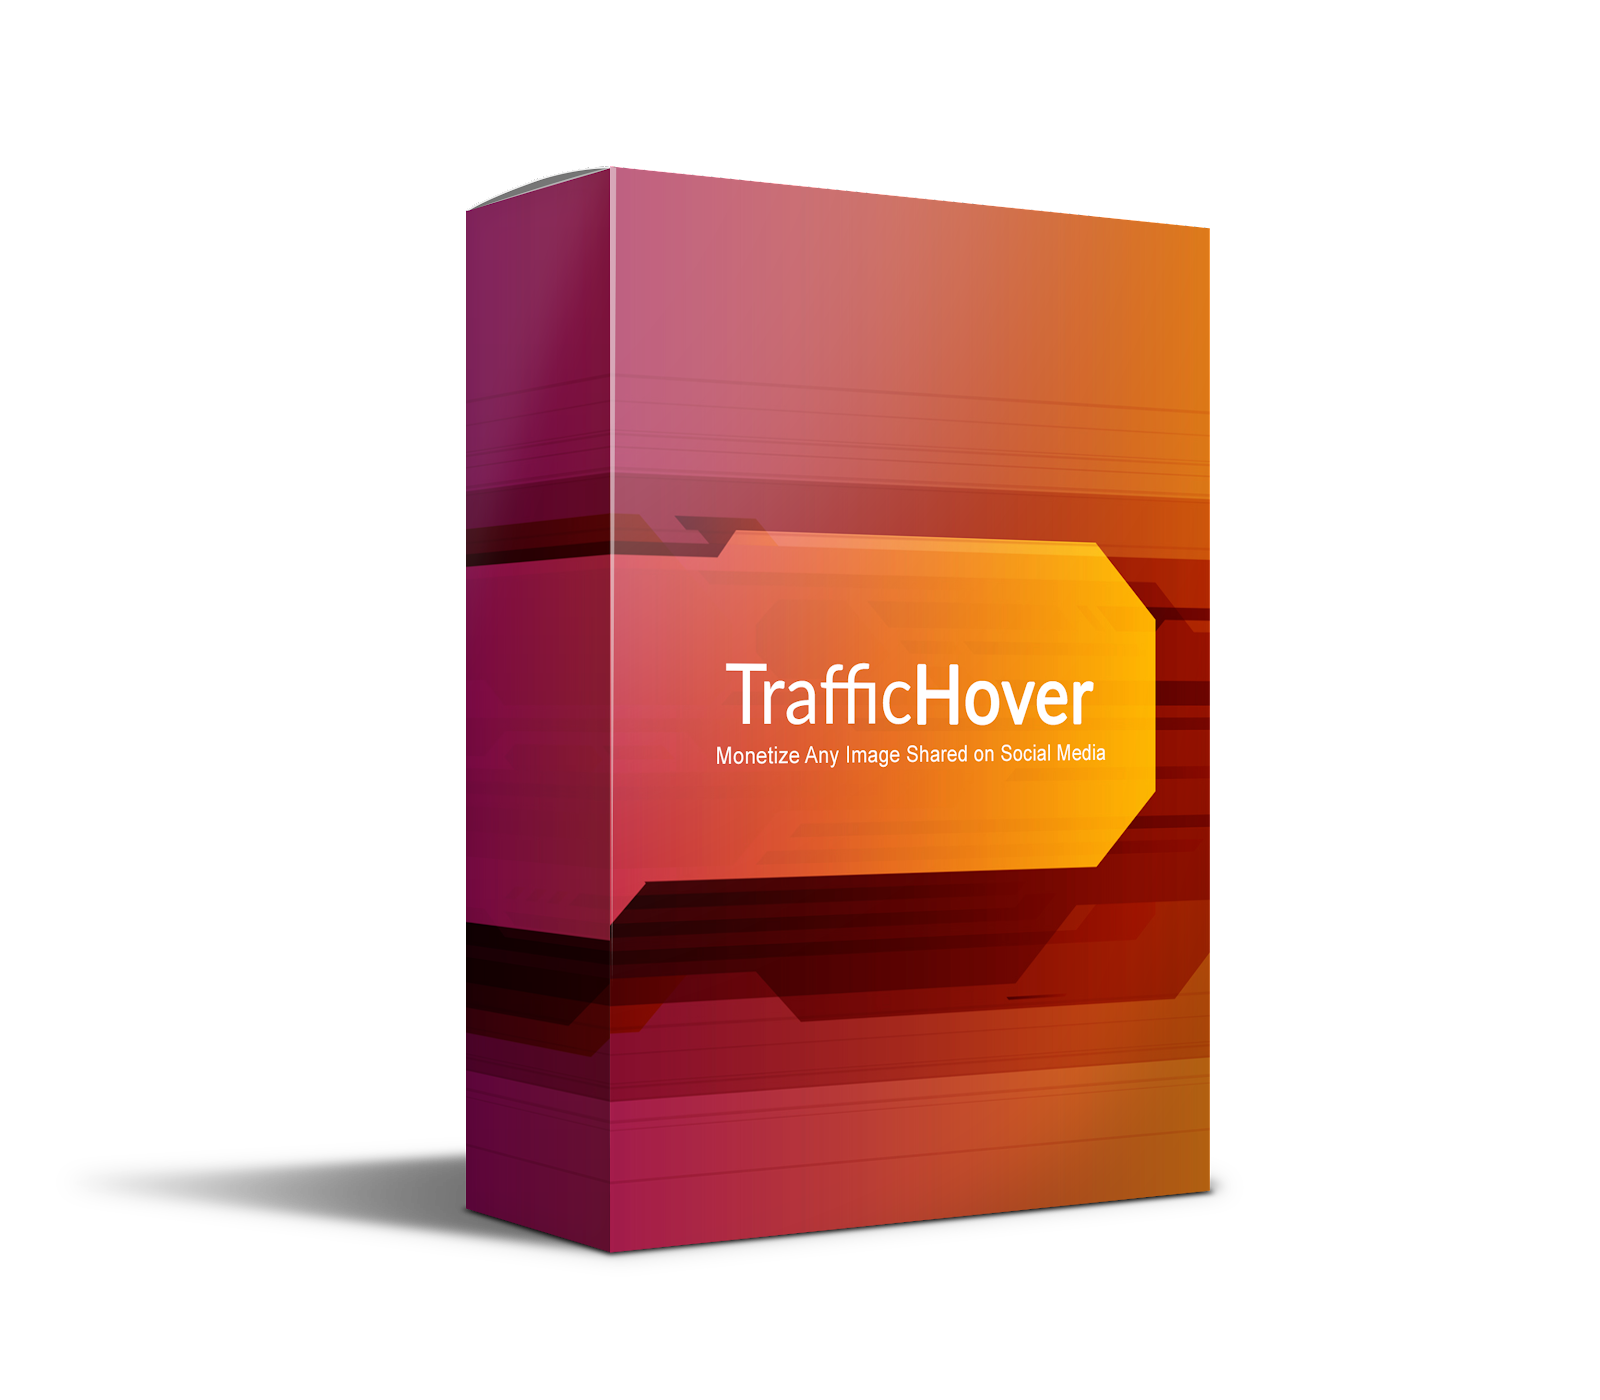 Traffic Hover